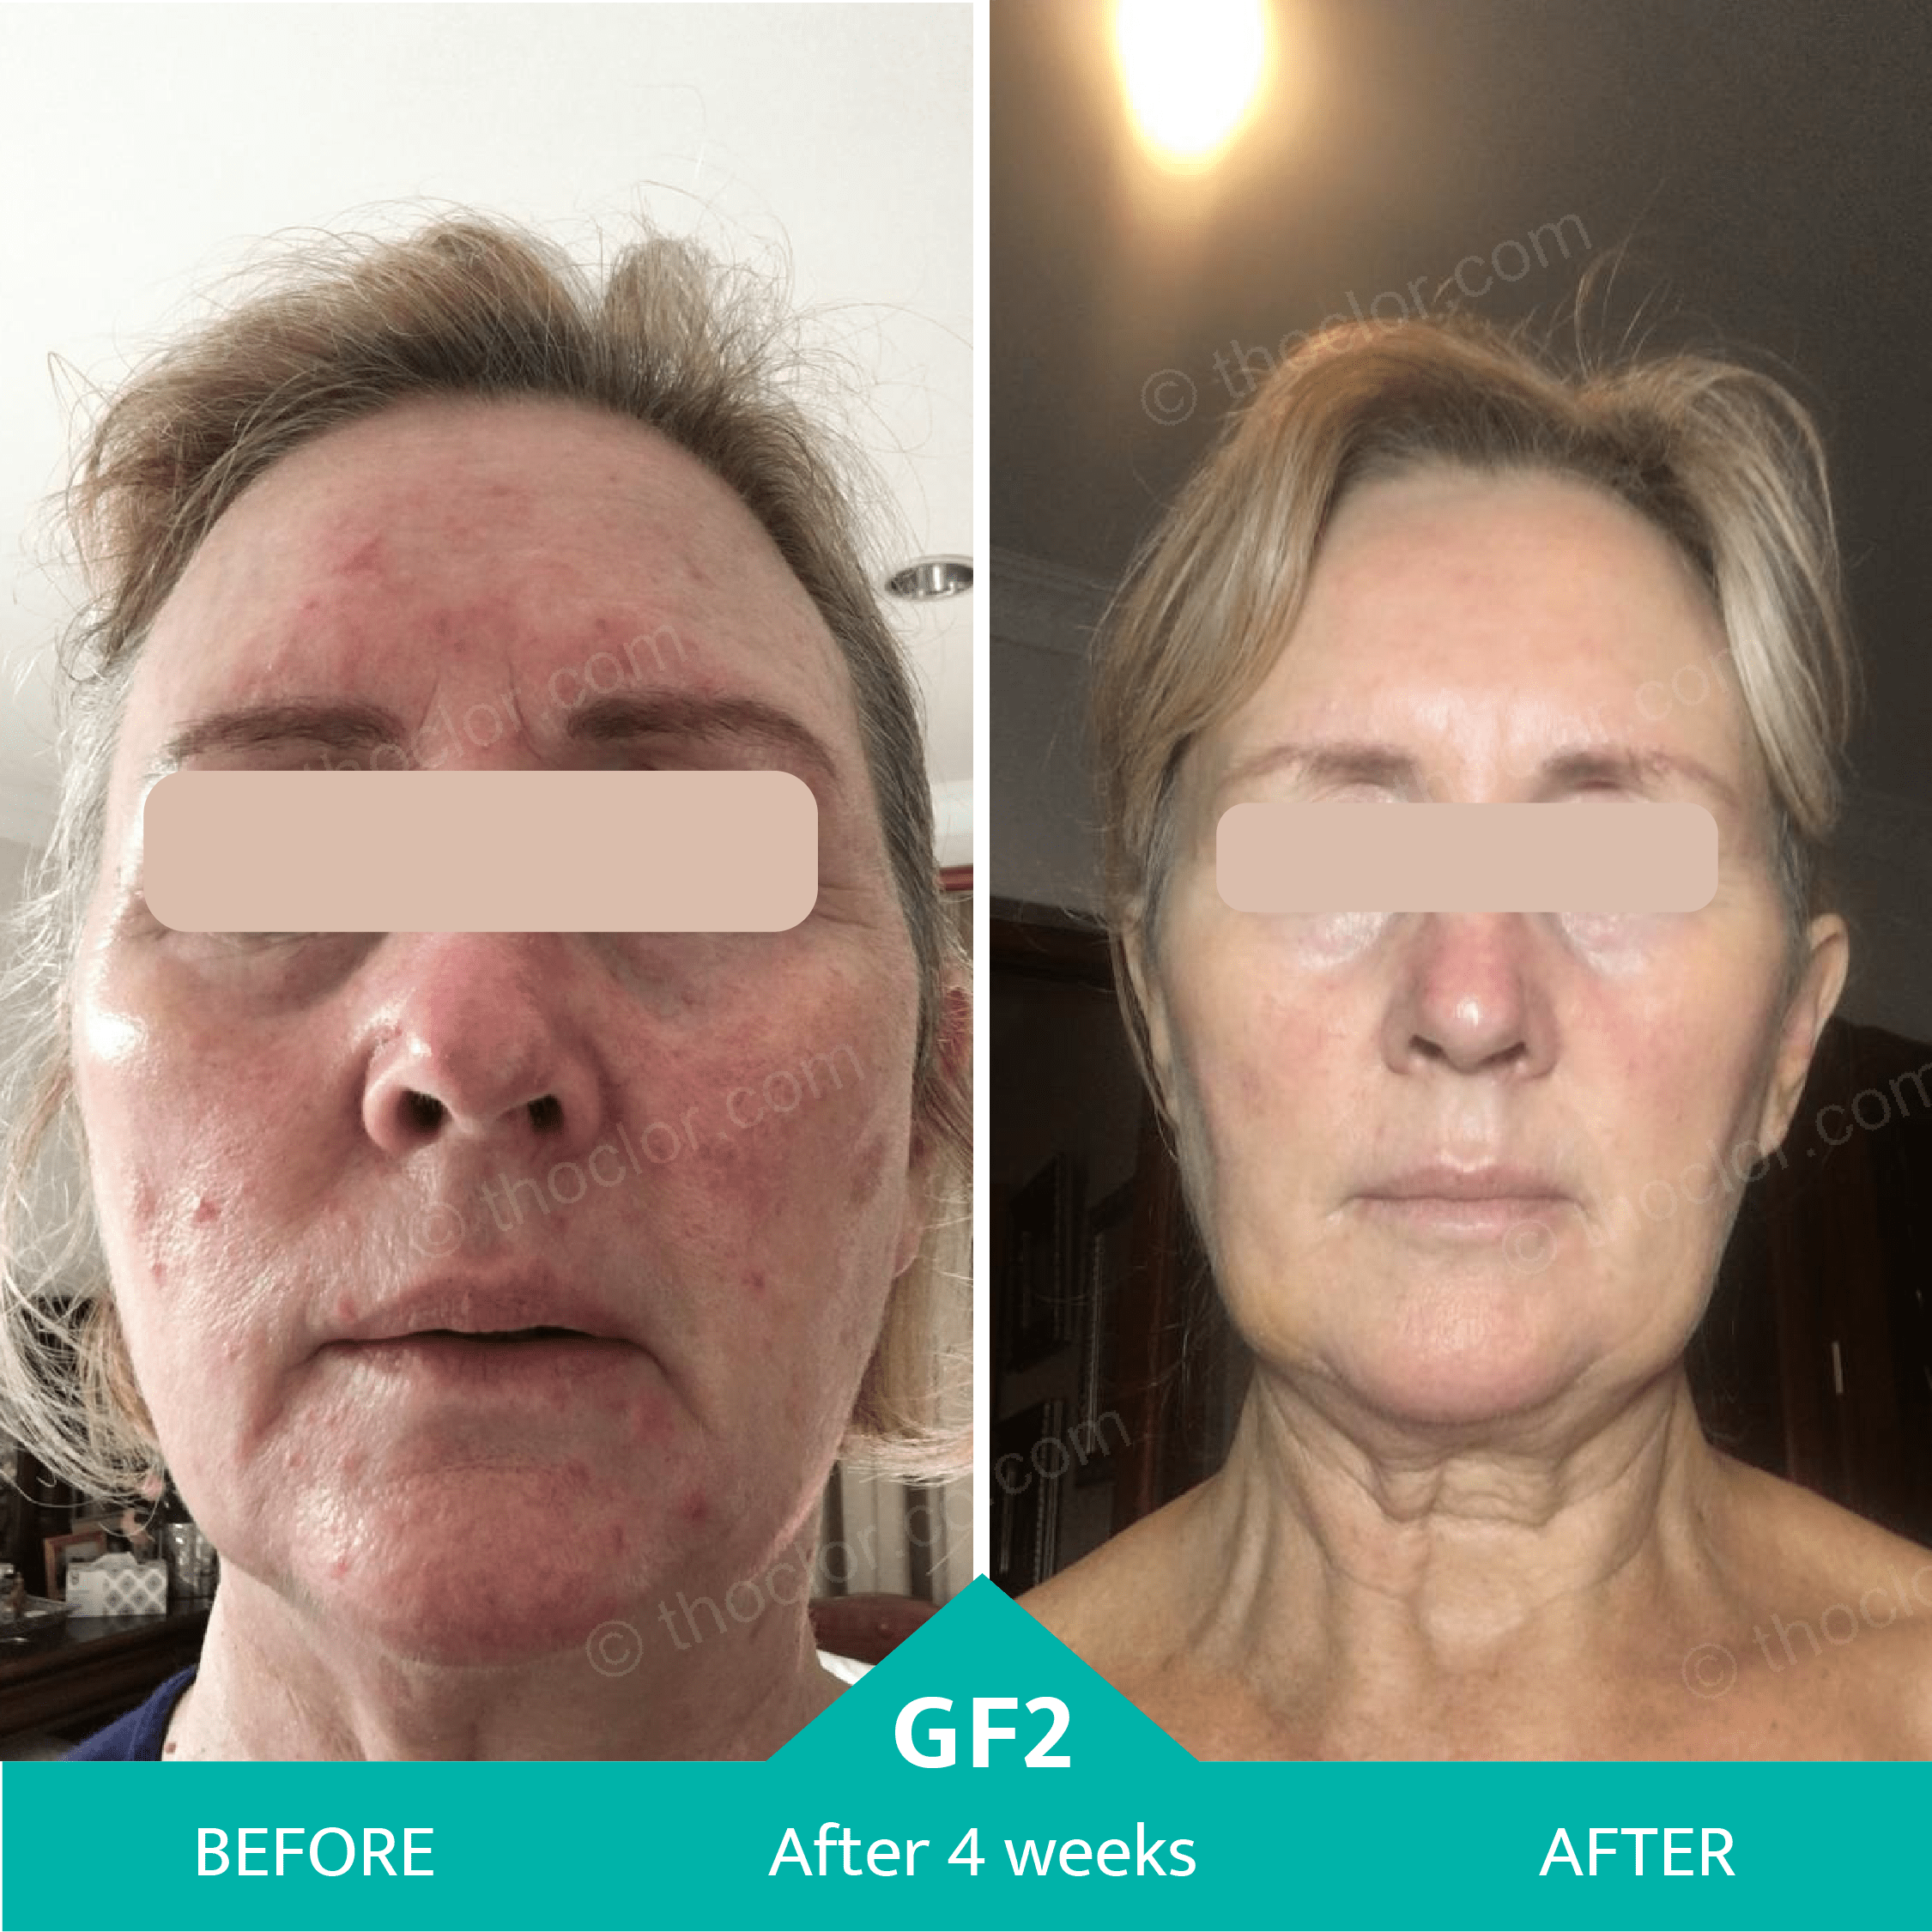 rosacea inflammation reduced with GF2